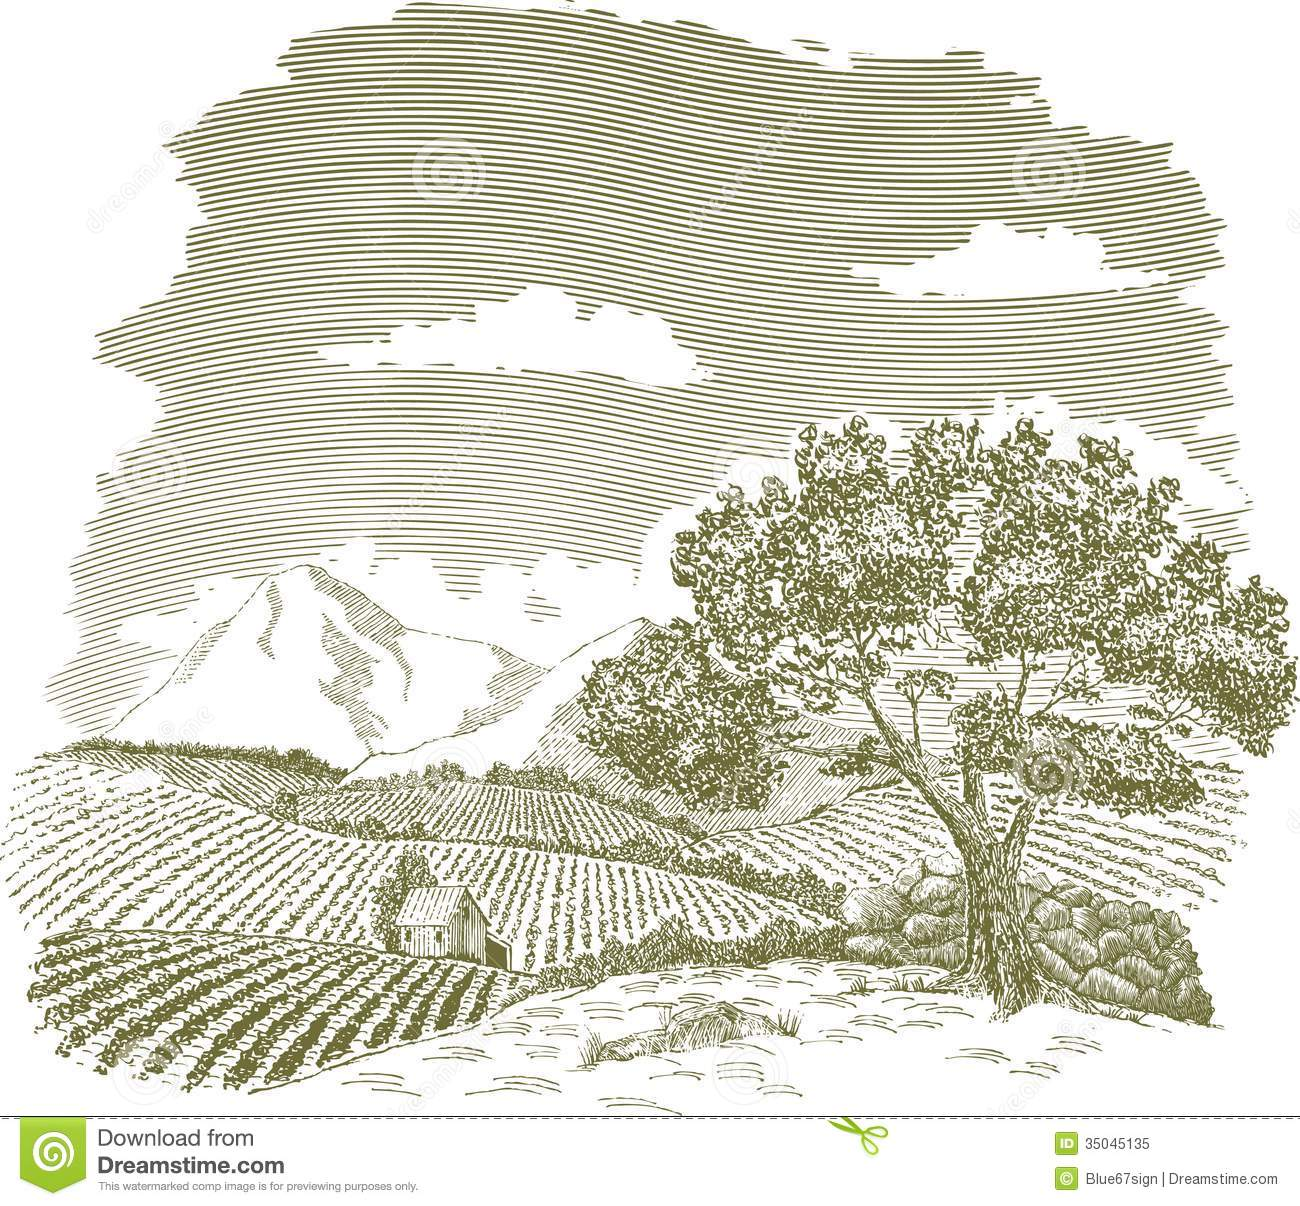 Mountain Farm Field Drawing Stock Vector - Illustration of tree ... for Farm Field Sketch  557ylc